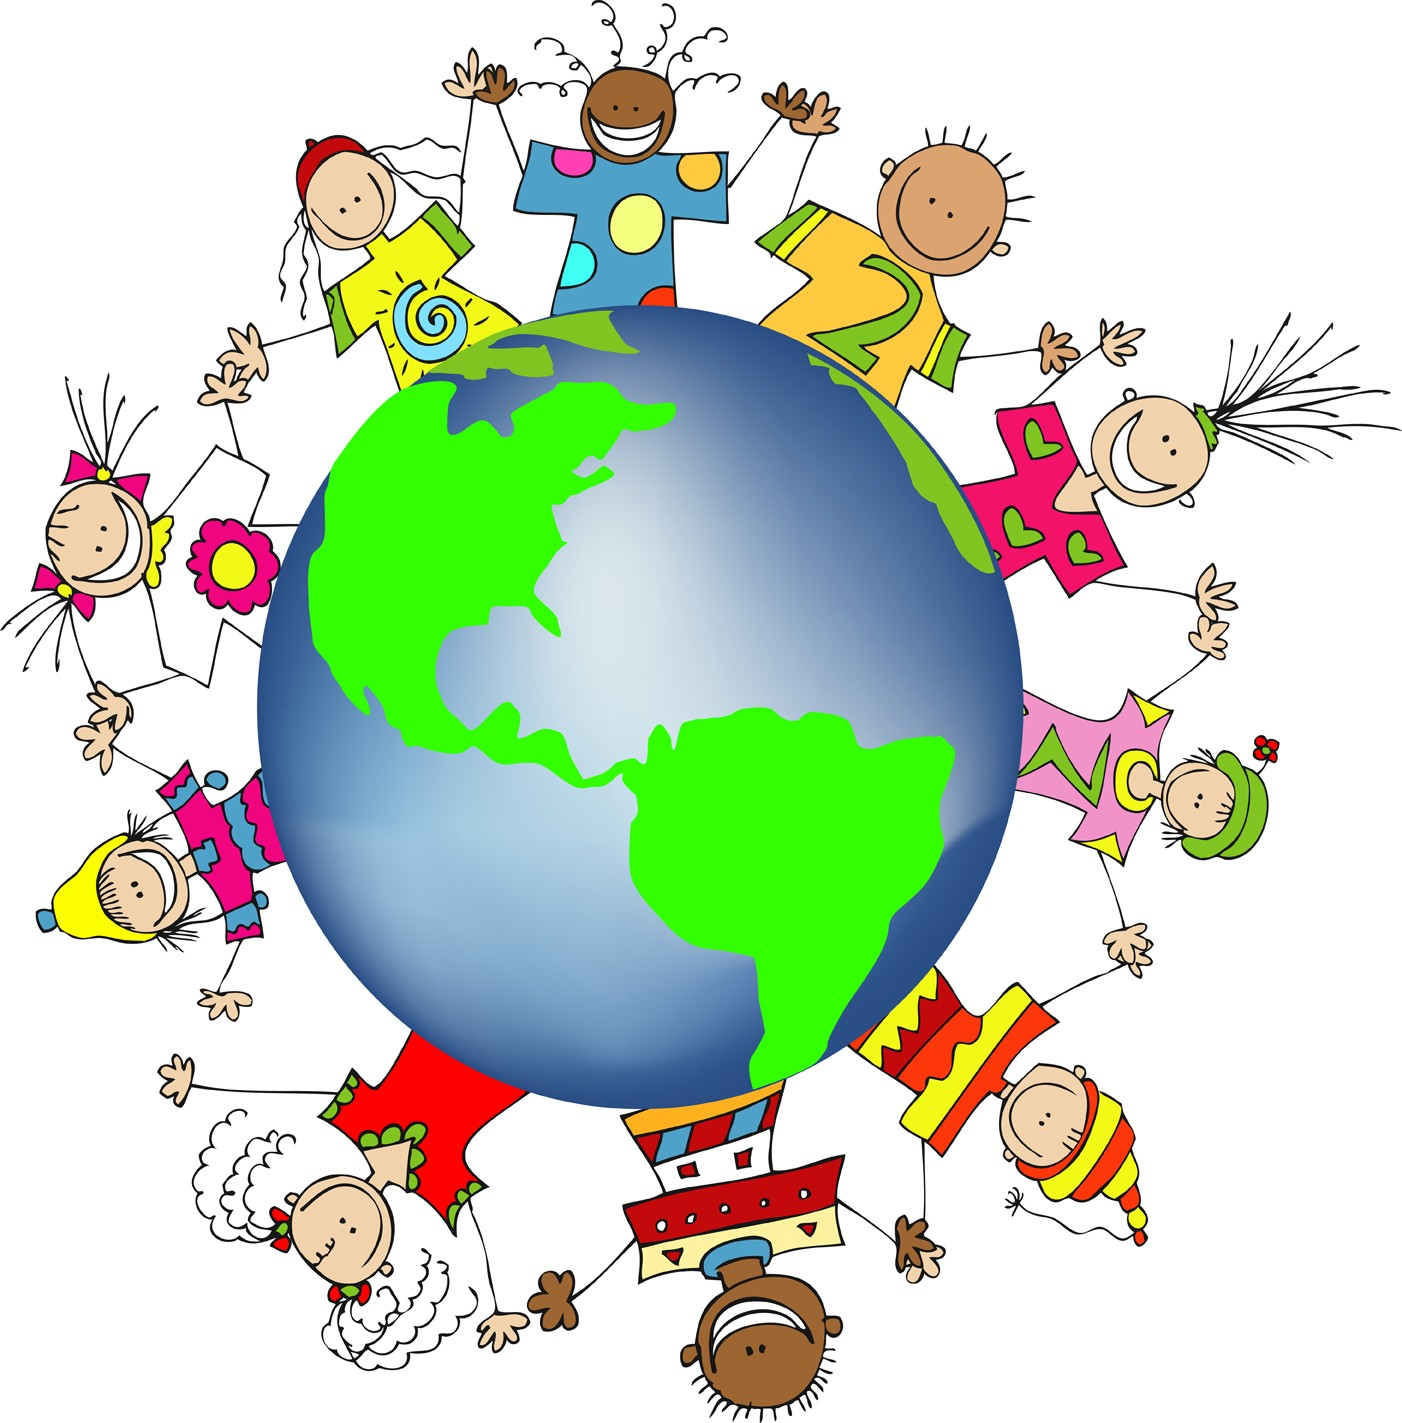 World Map Clipart At Getdrawings Com Free For Personal Use World